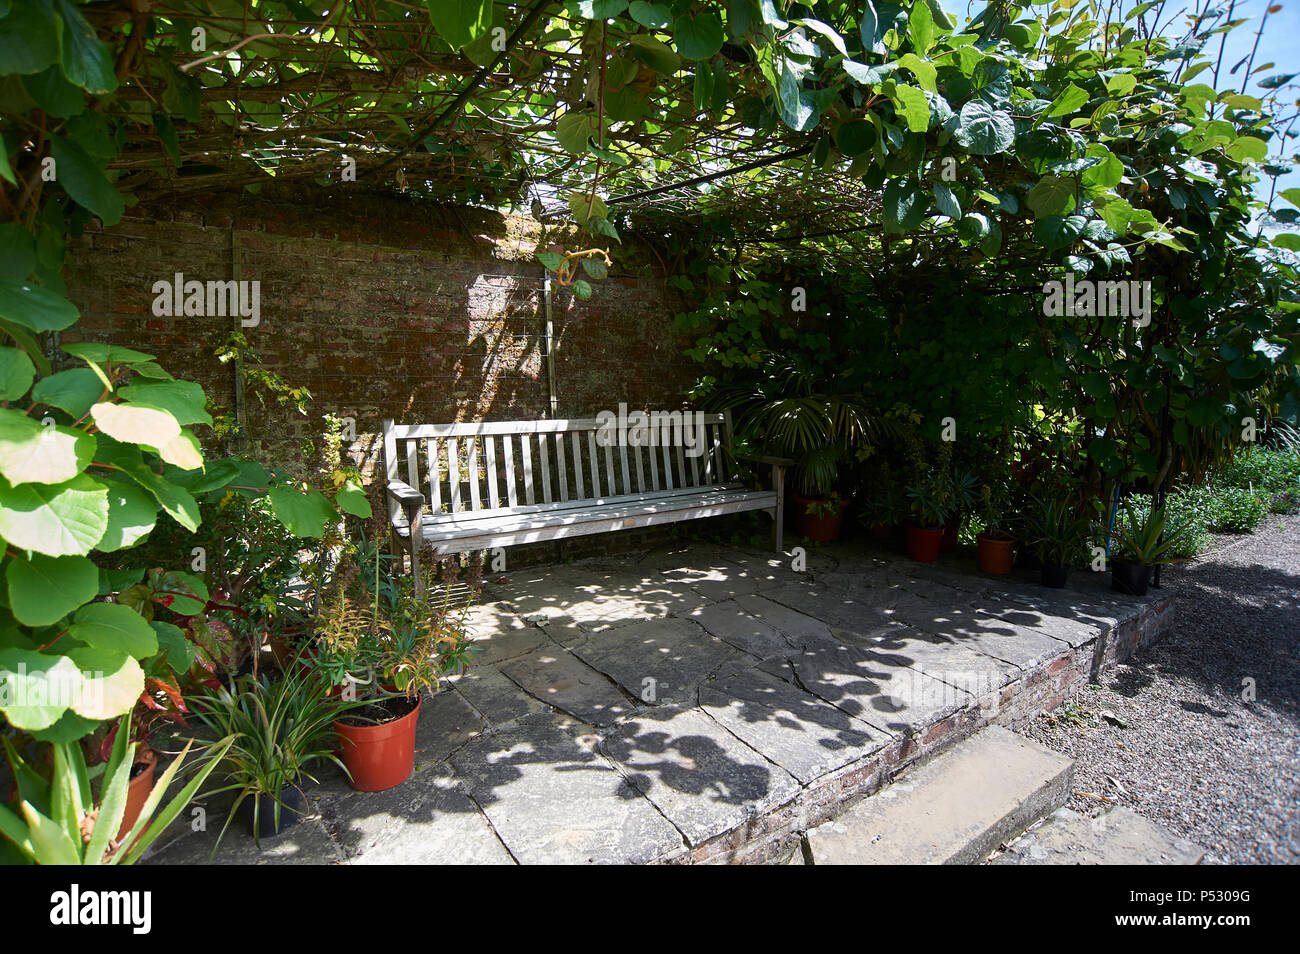 Heavy Duty Counter Stools, Garden Bench In The Shade Against An Old Garden Wall Sunner Uk Gb Stock Photo Alamy